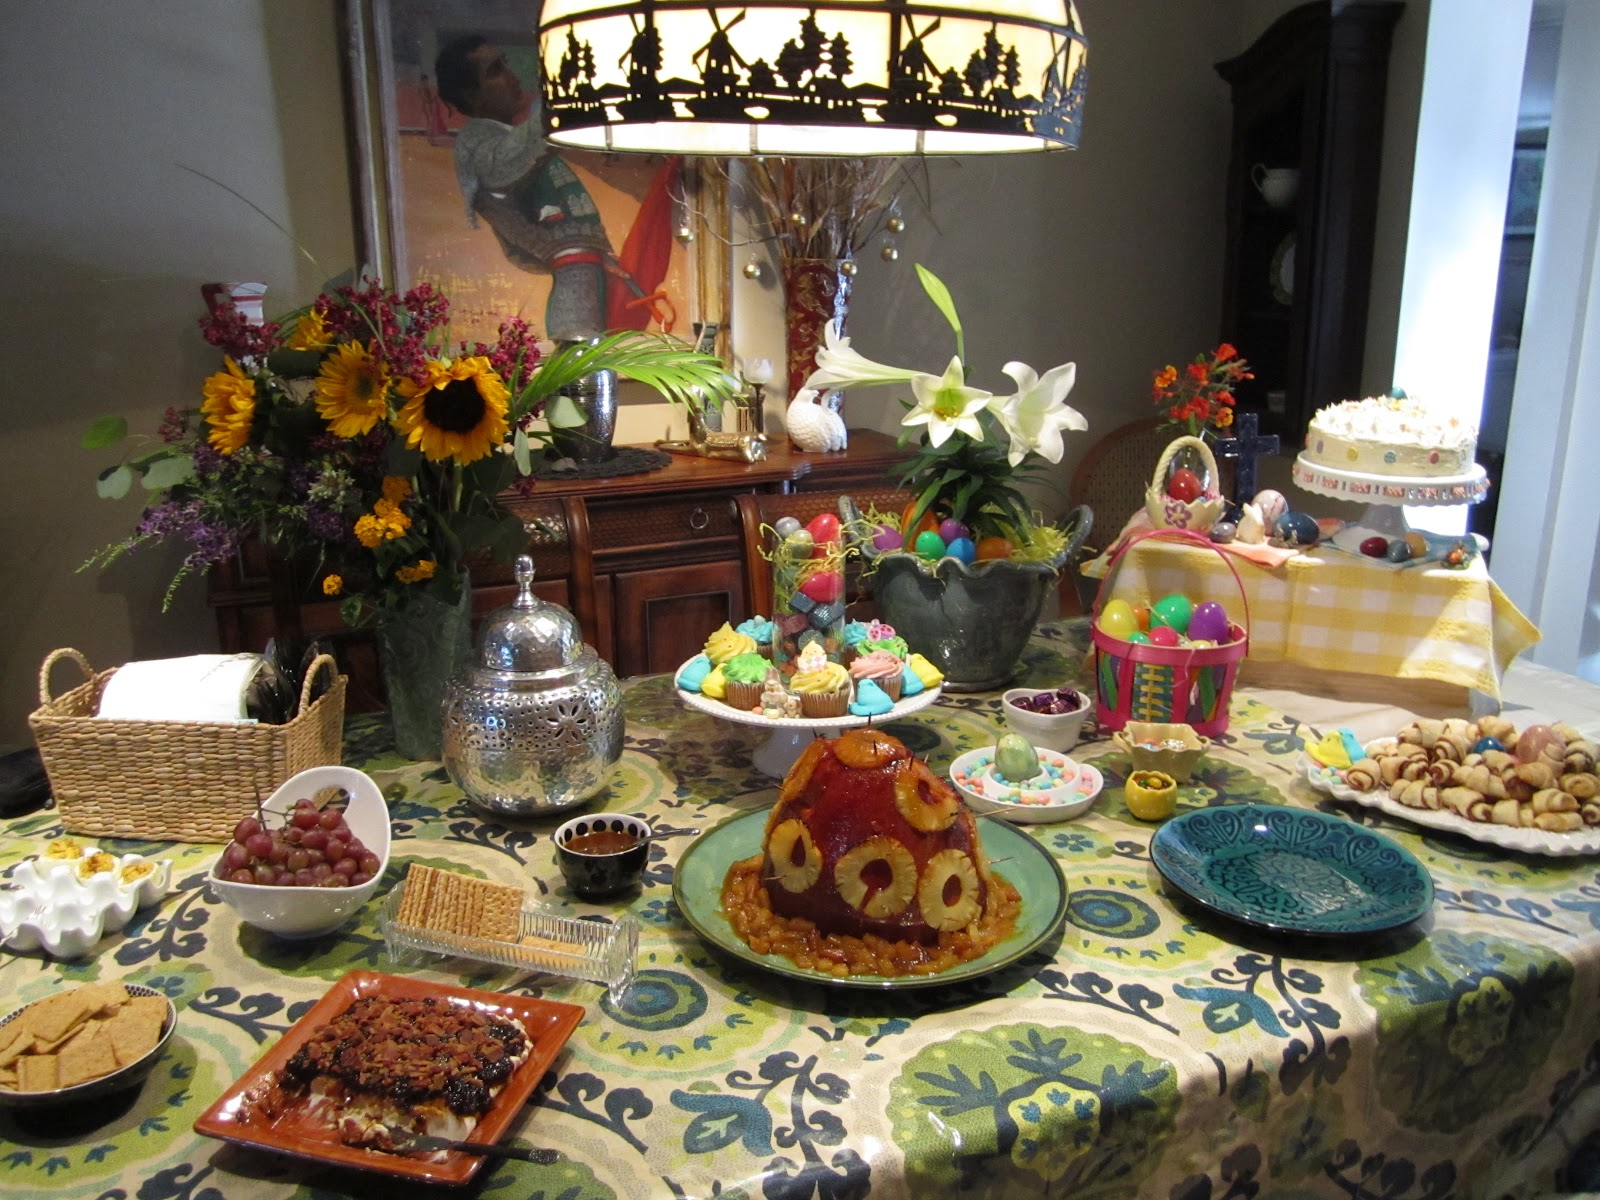 Easter+-+Easter+decor+-+Easter+table+-+dinner+-+buffet+-+tablescape+by ...